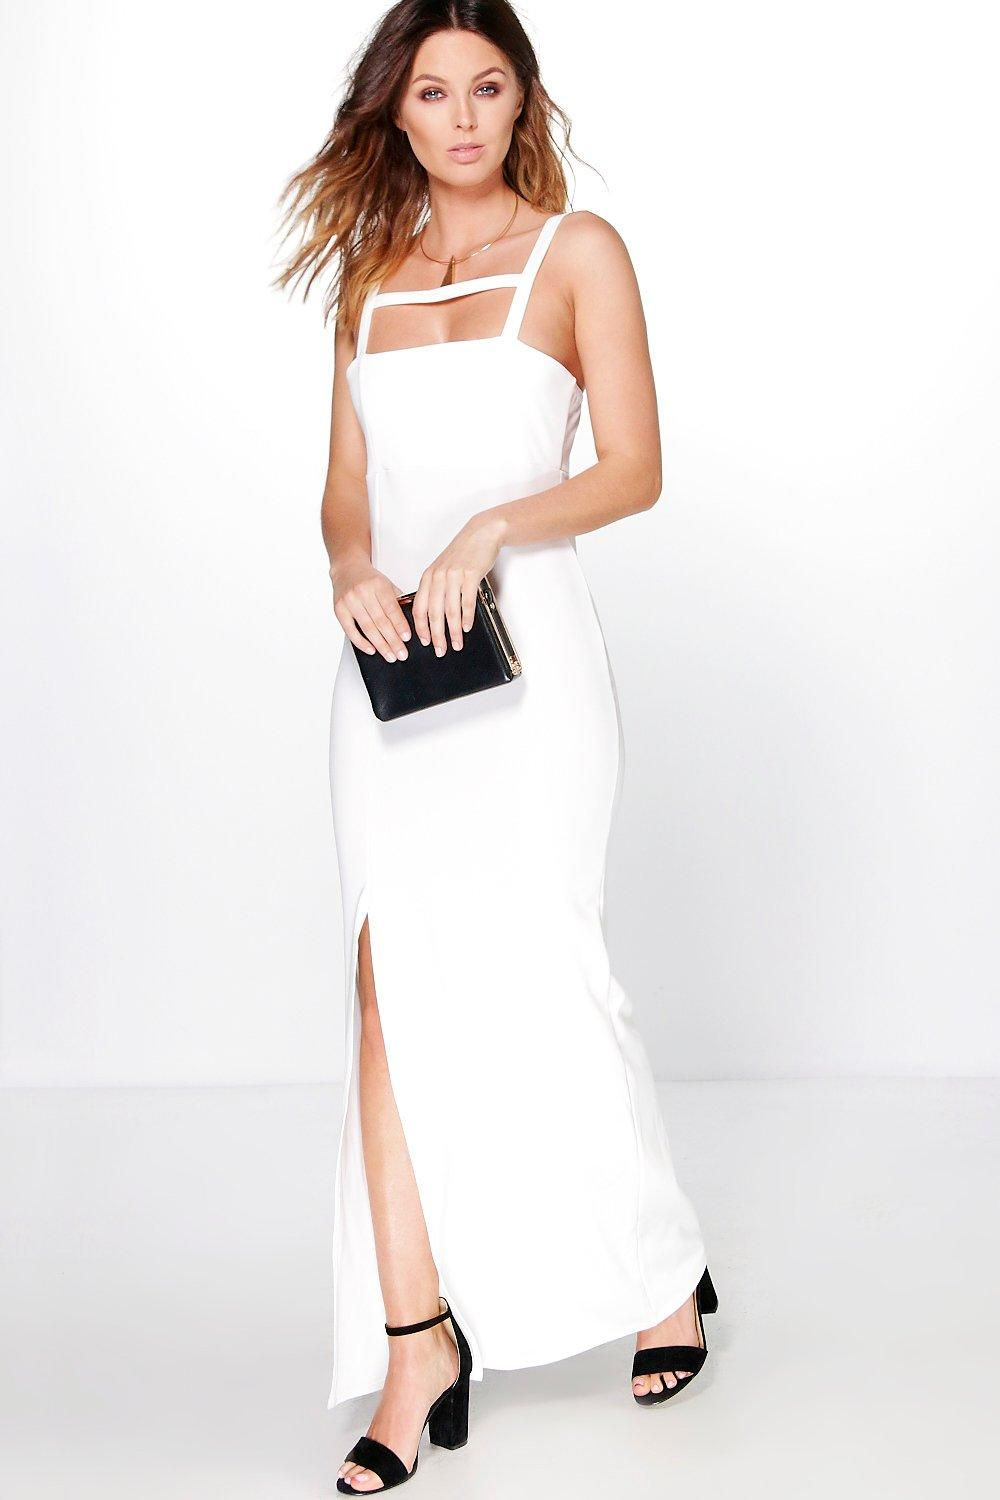 Mabel Square Neck Strappy Detail Maxi Dress